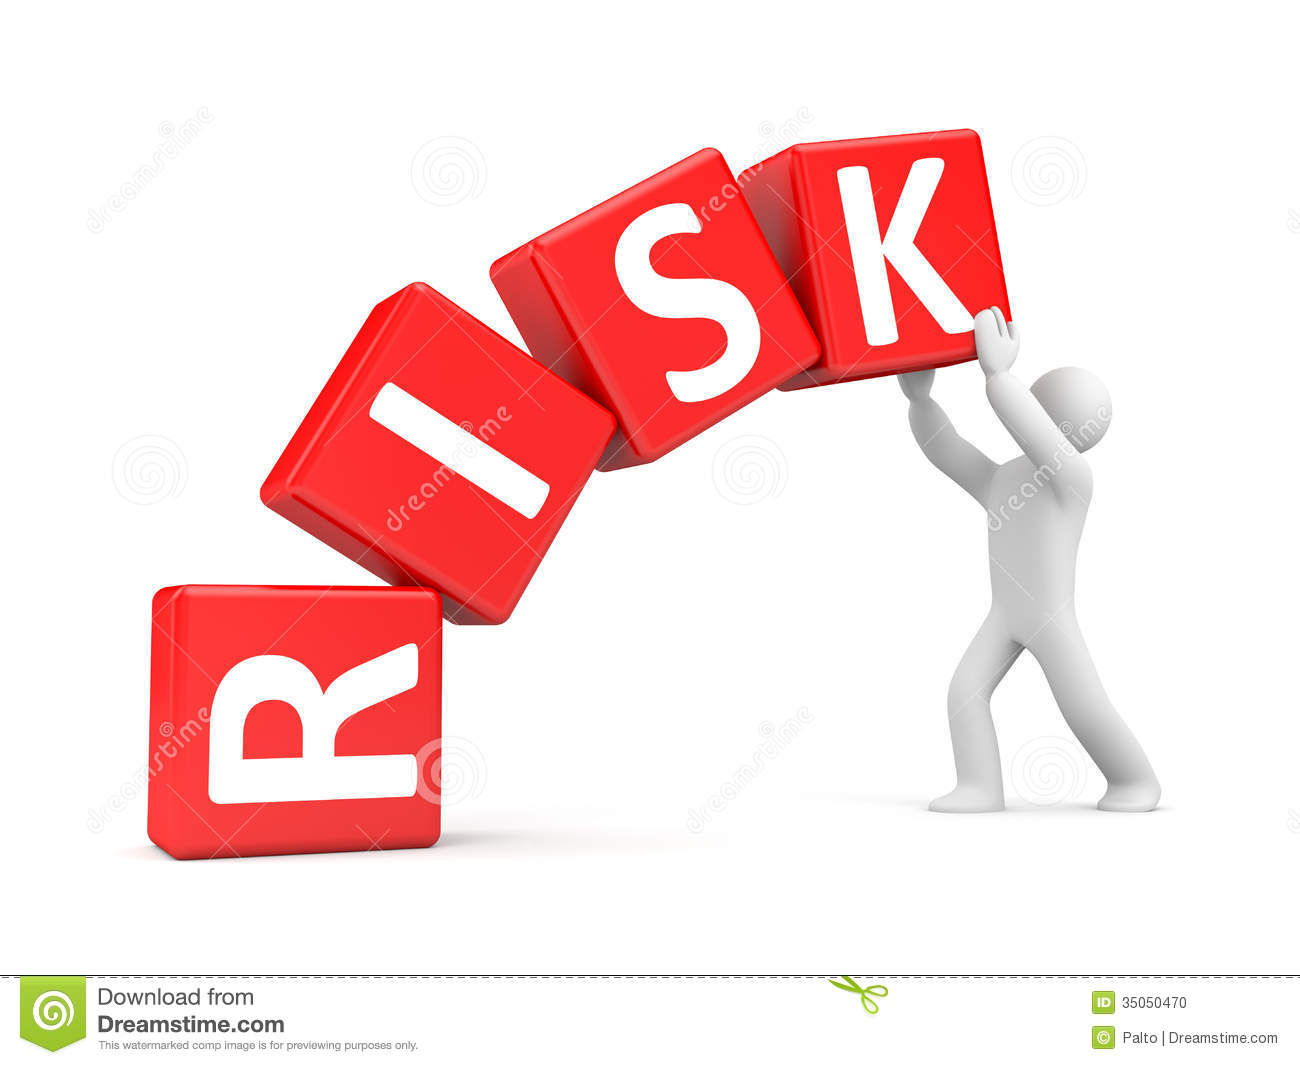 risk clipart clipart panda free clipart images rh clipartpanda com risk factors clipart clipart risk assessment